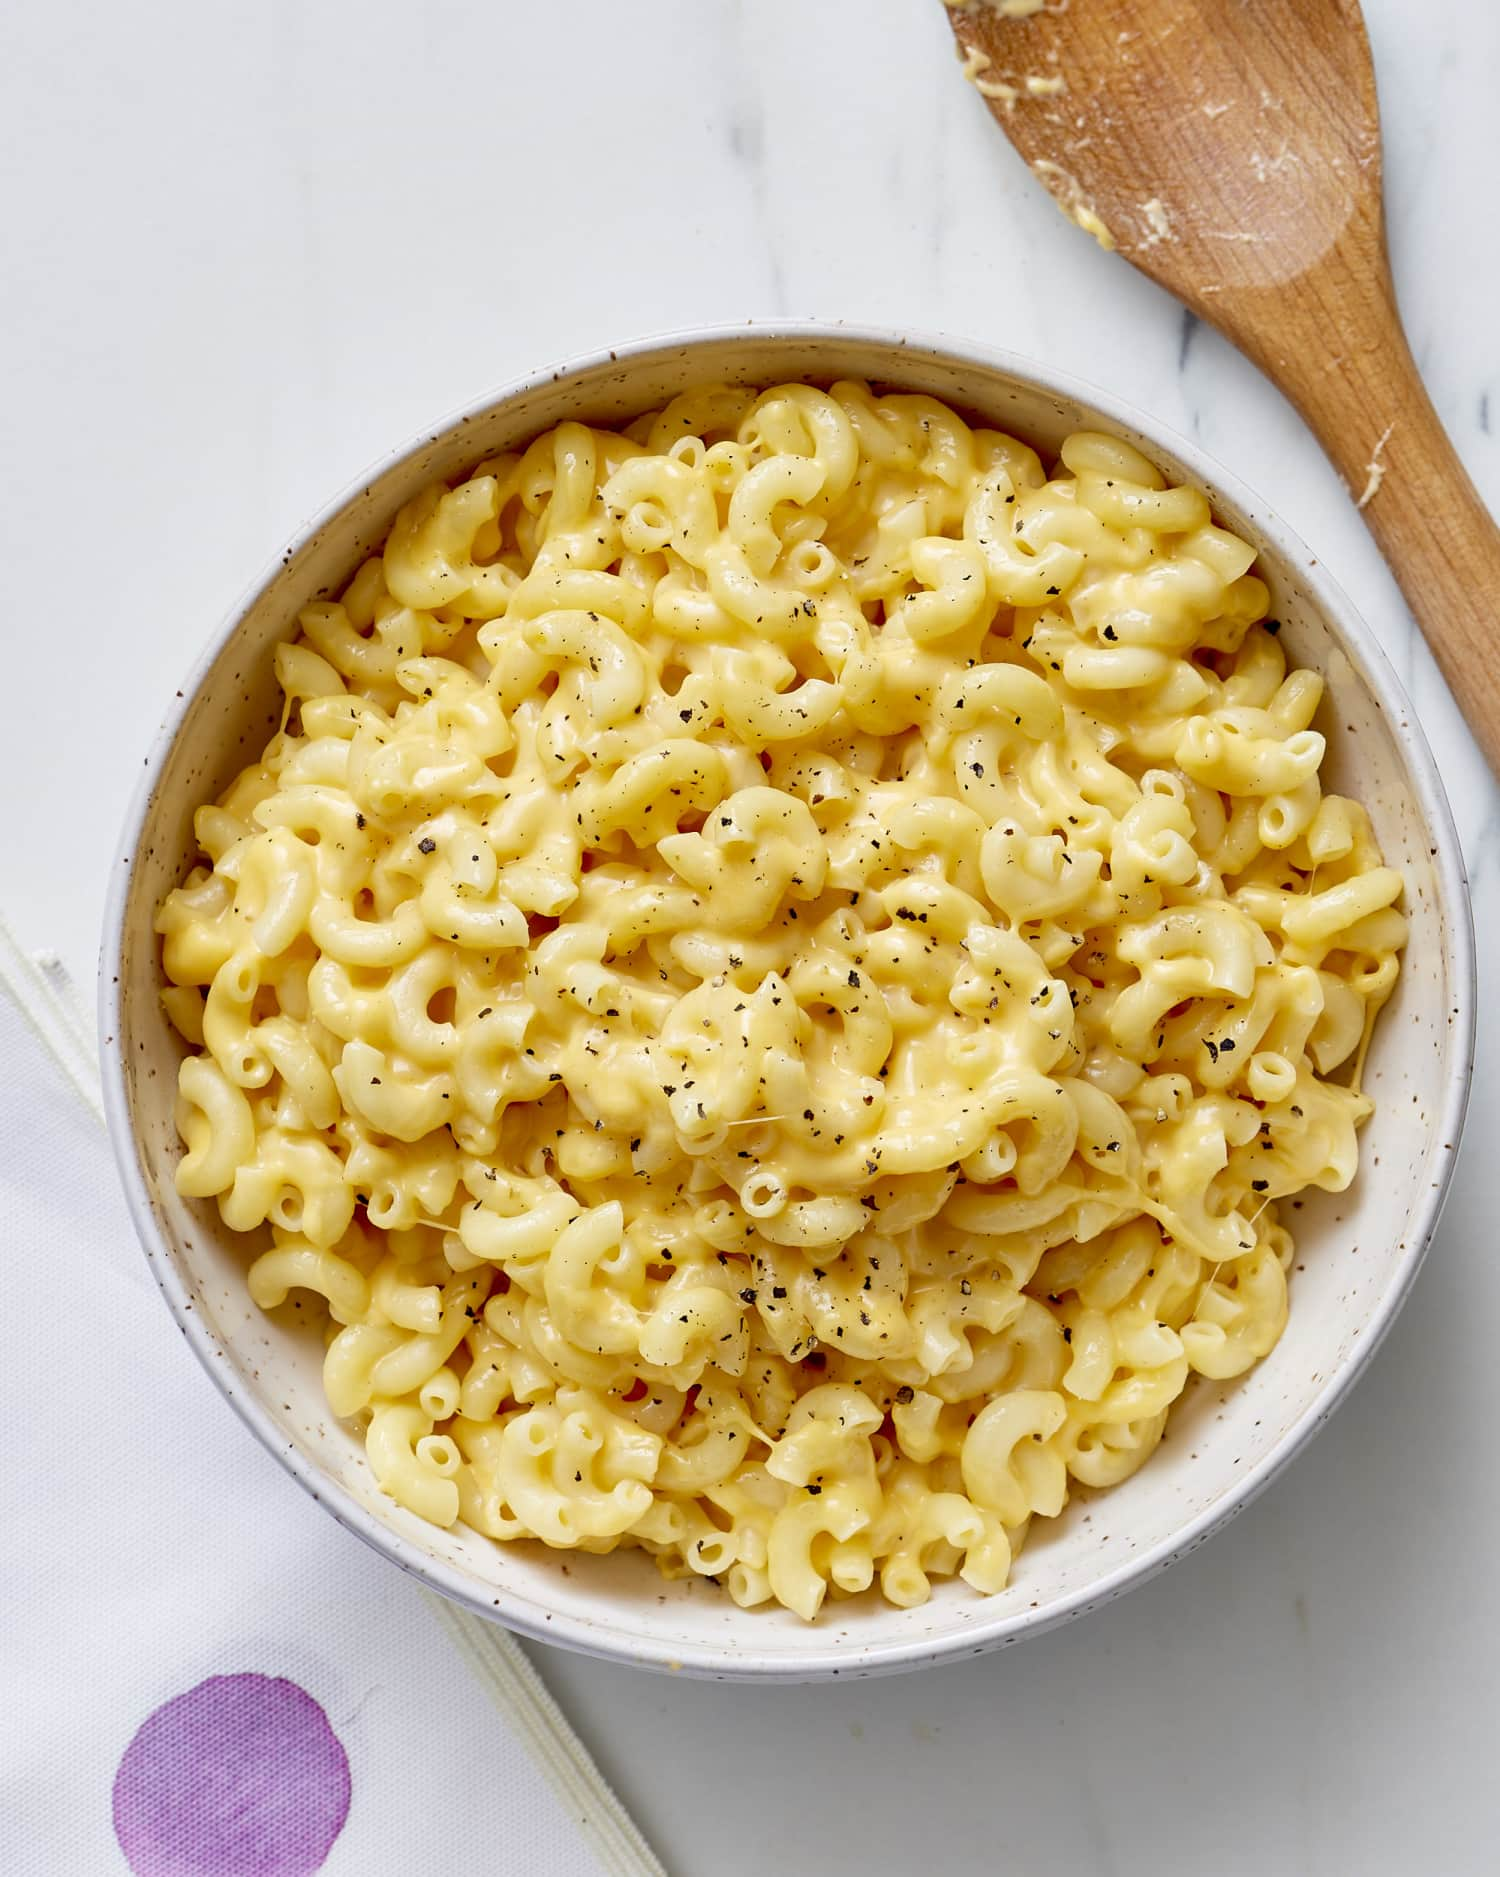 How To Make the Best Macaroni and Cheese on the Stove